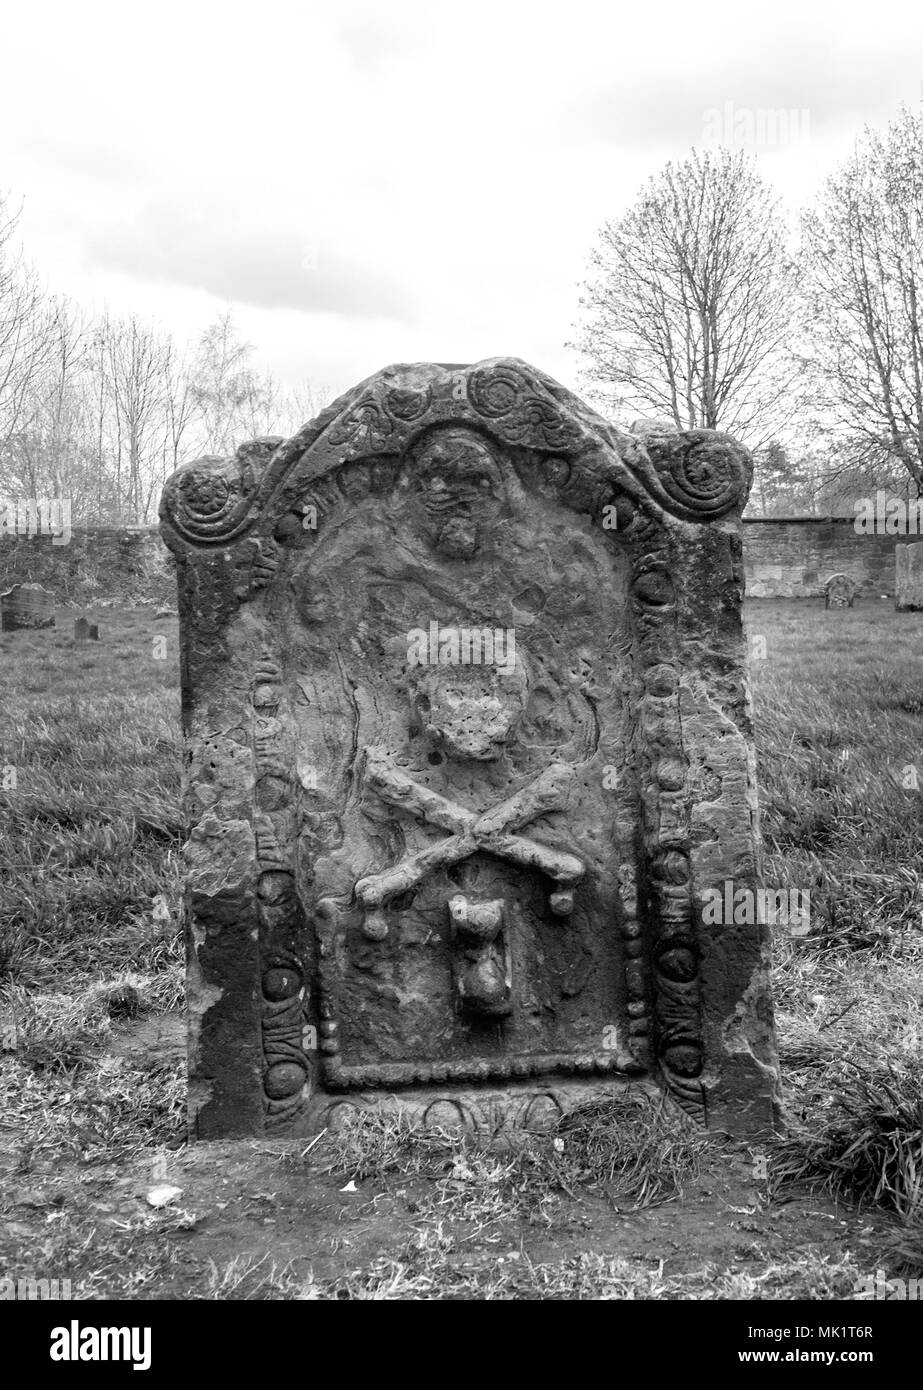 Glasgow scotland april 23rd 2018 a black and white photograph of a skull and bone cross on a gravestone at the govan old parish church